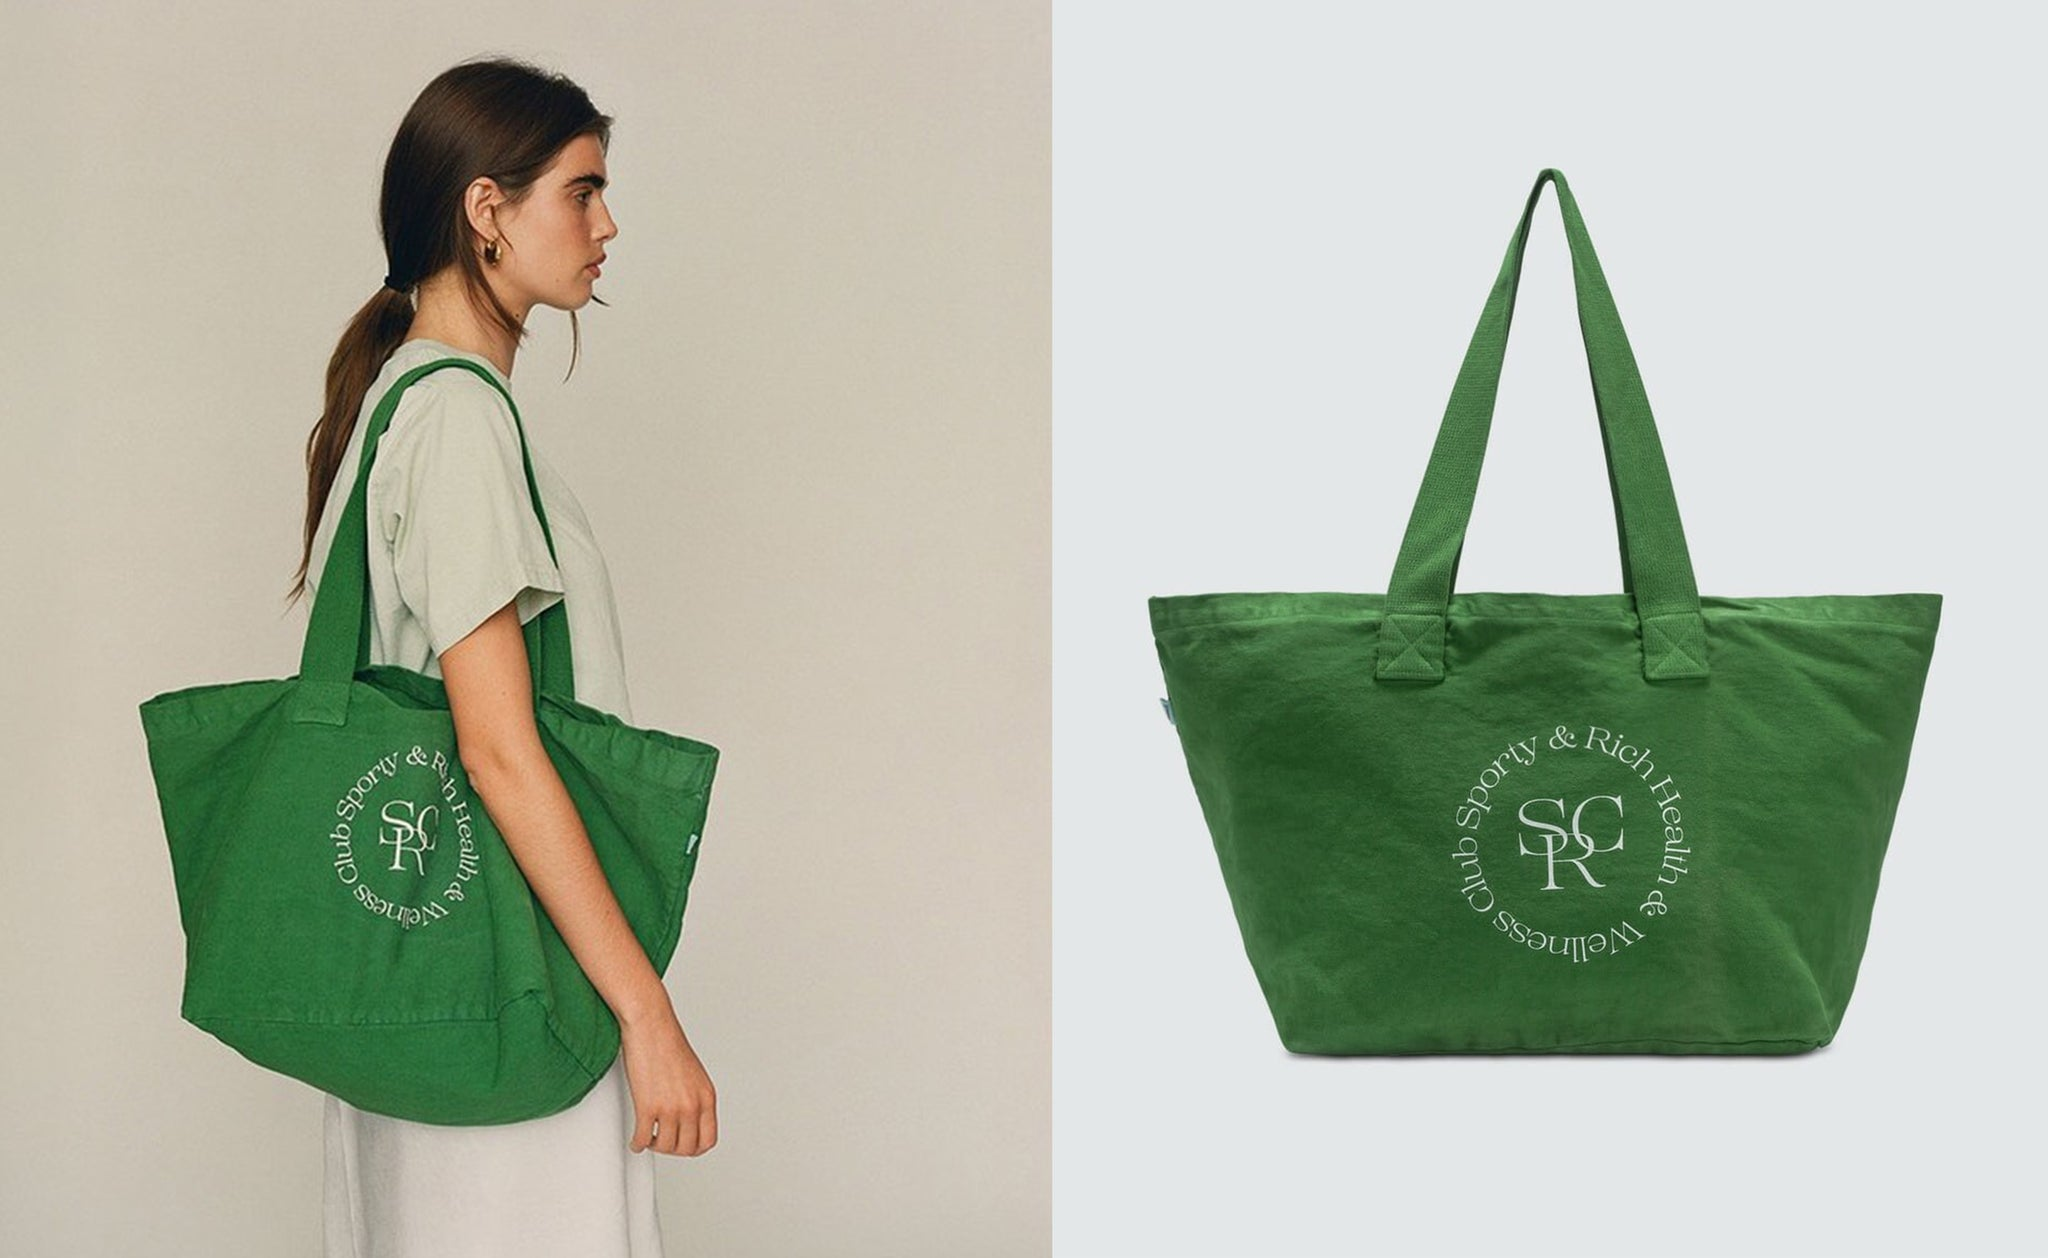 Model showcasing a sporty and rich beach bag, sustainable goods